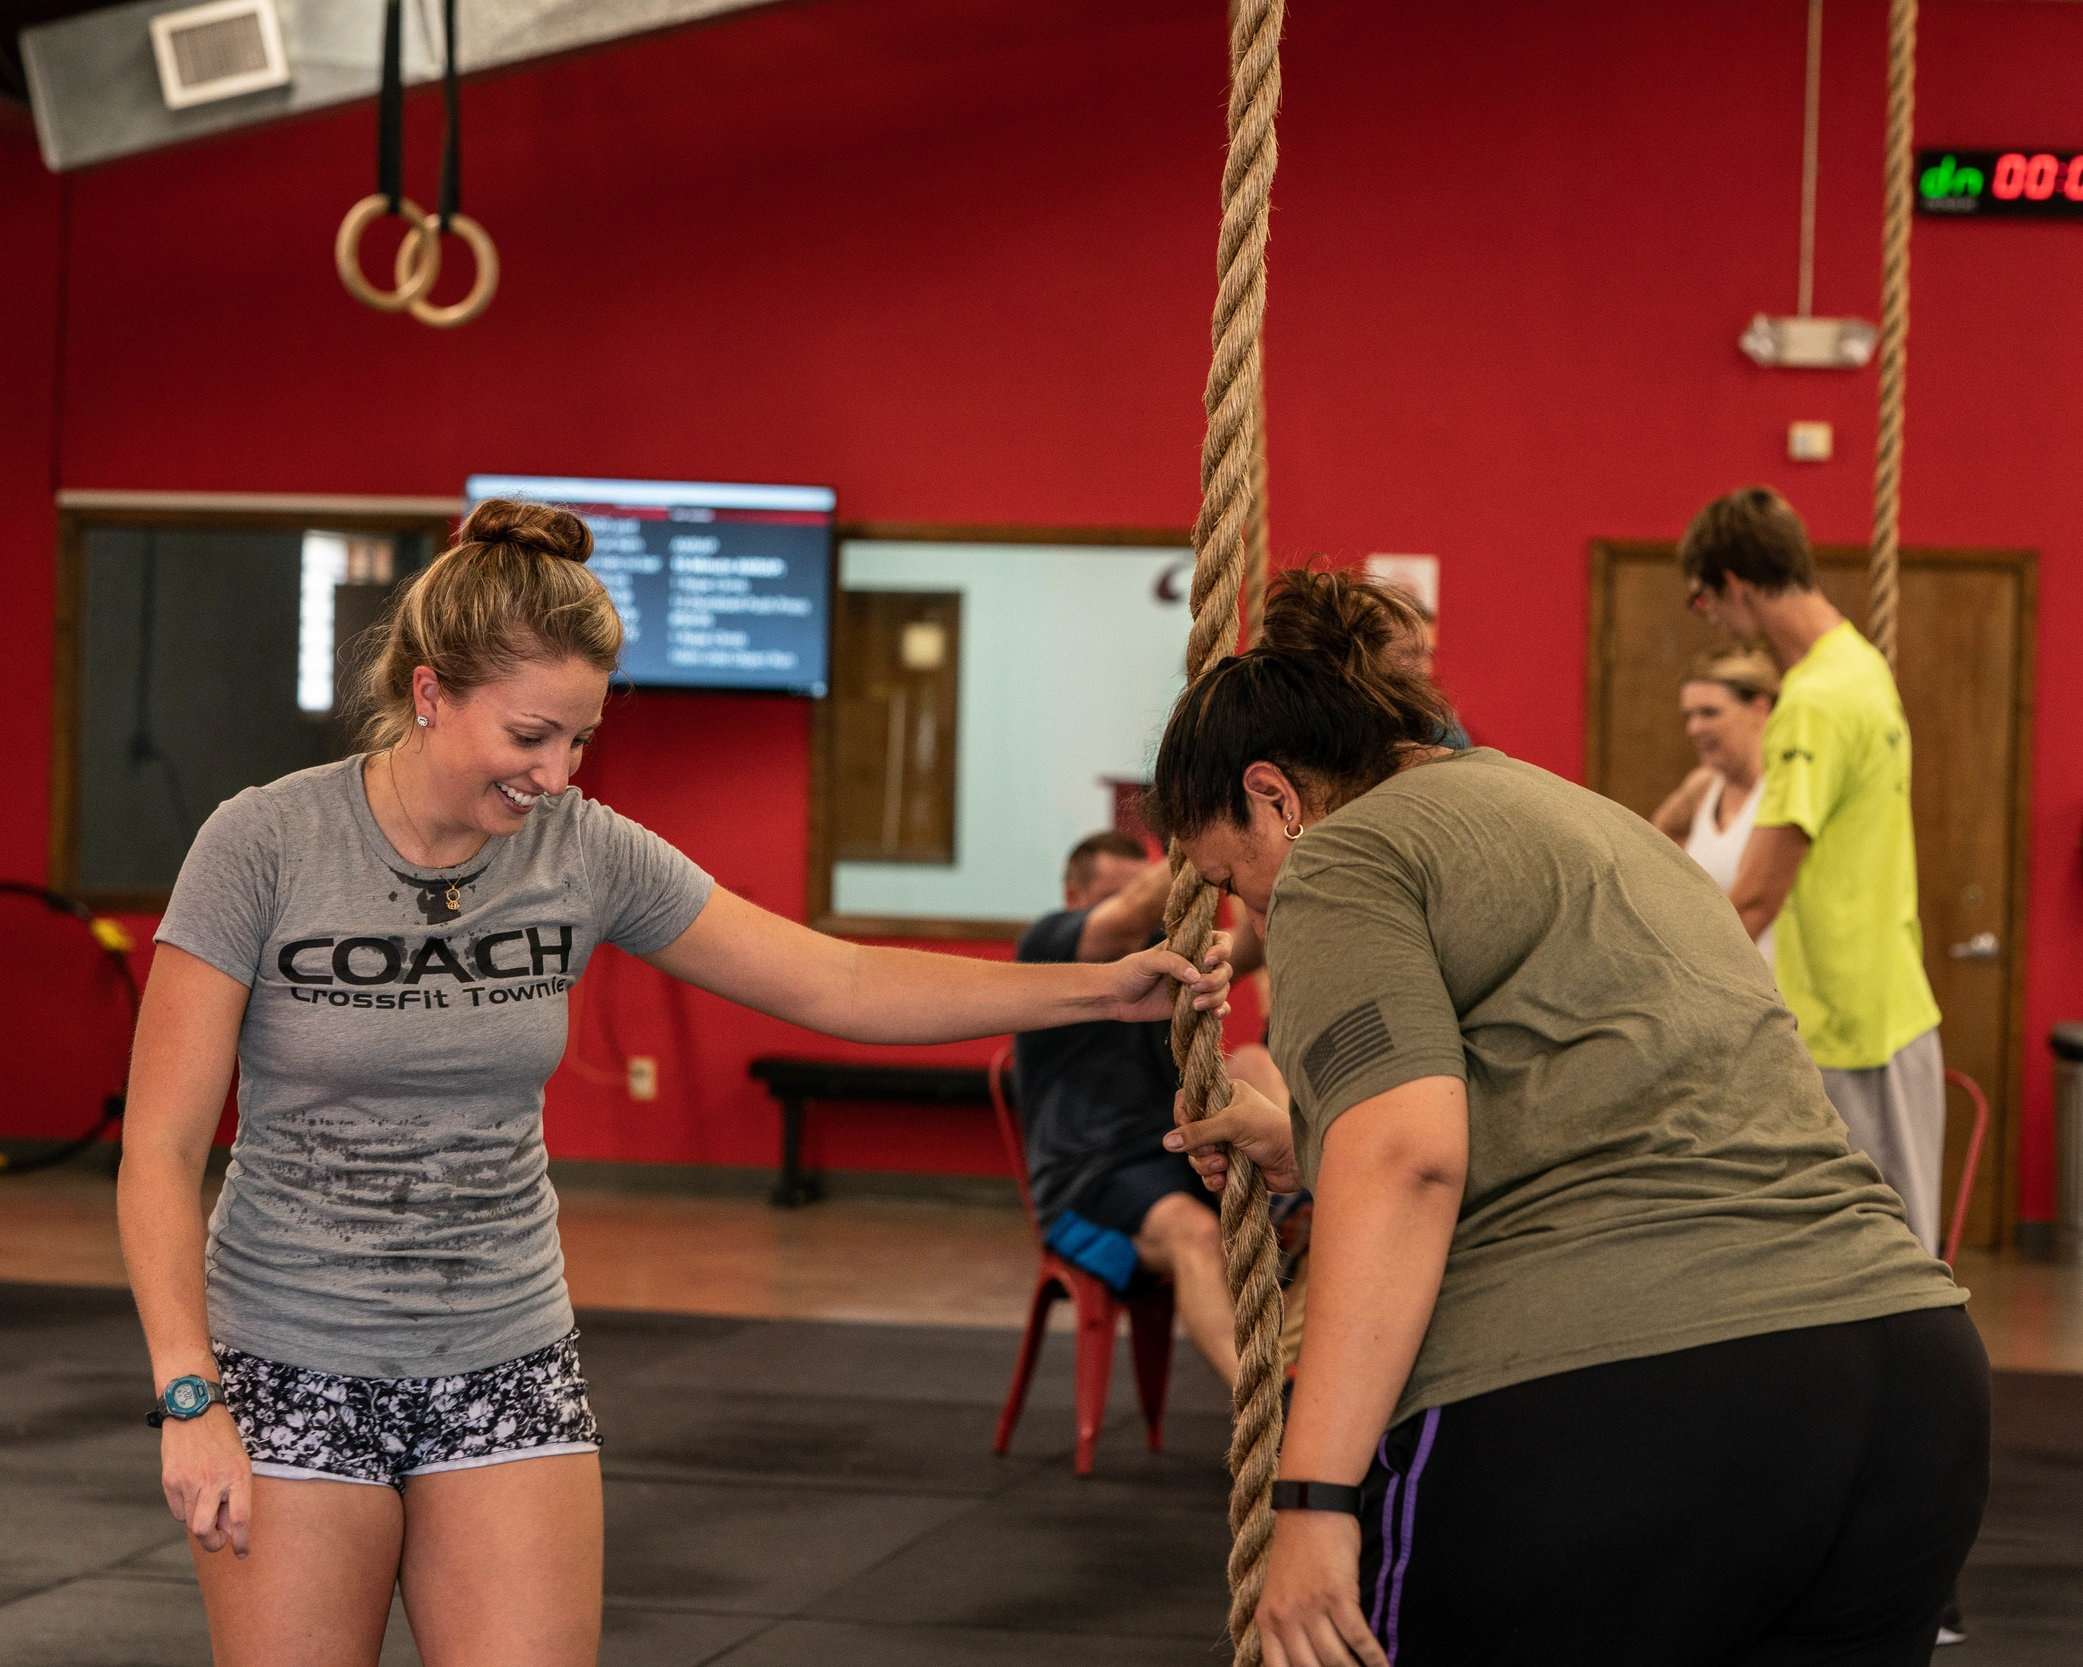 Coach Kelly Ledger shows Martha Millard how to do a rope climb